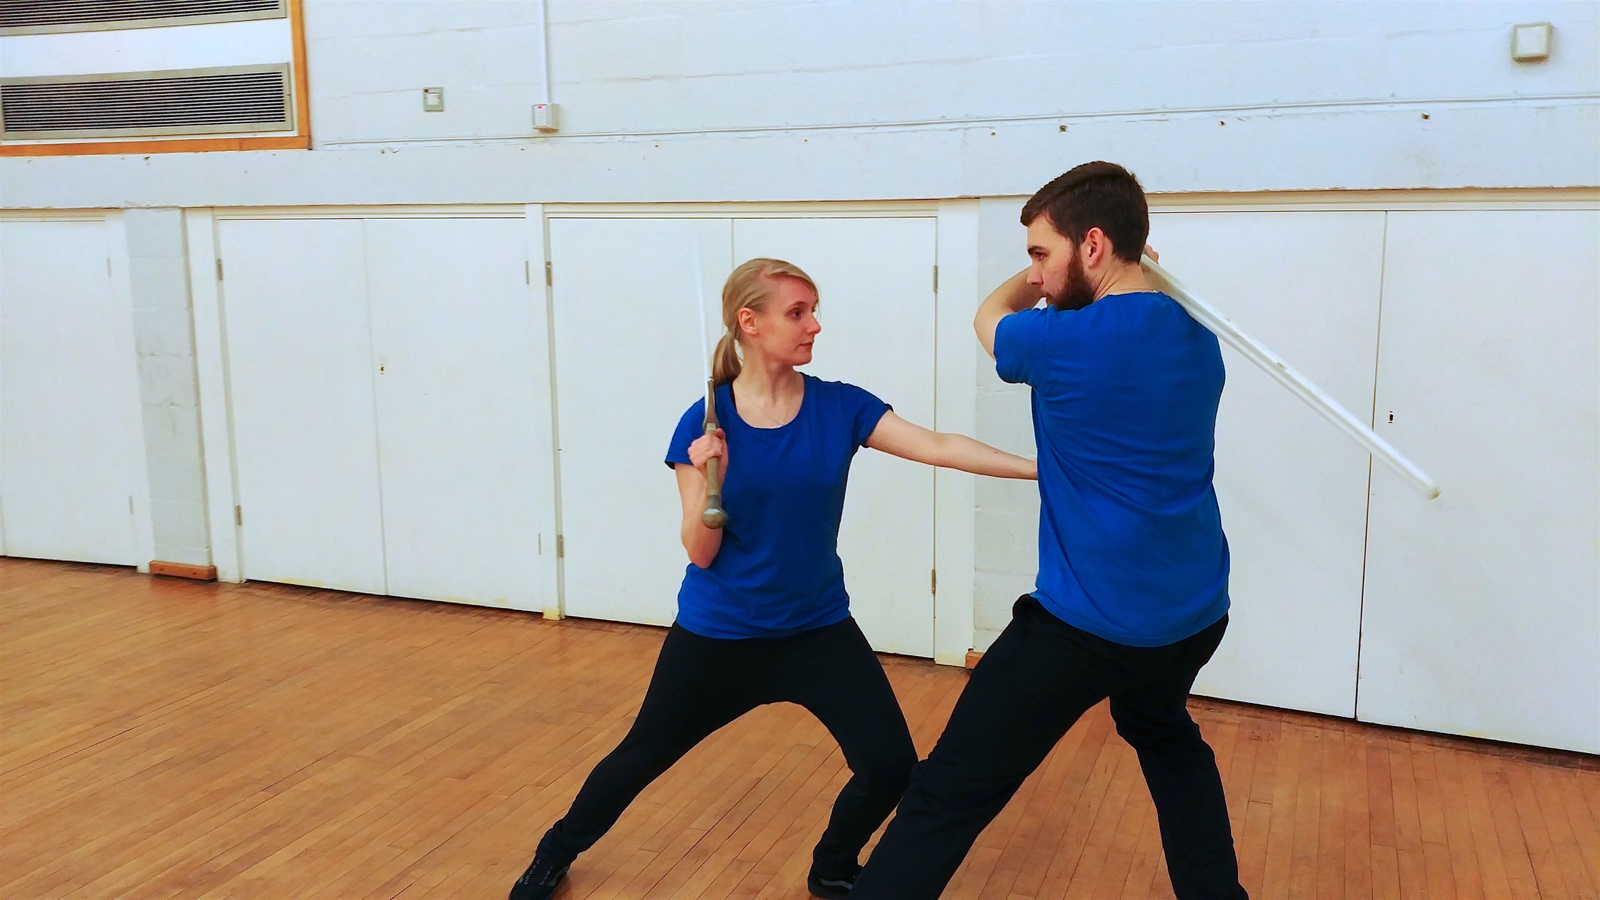 Jodie and Ben practising body structure and the ability to move through resistance. Photo by Keith Farrell, 2018.